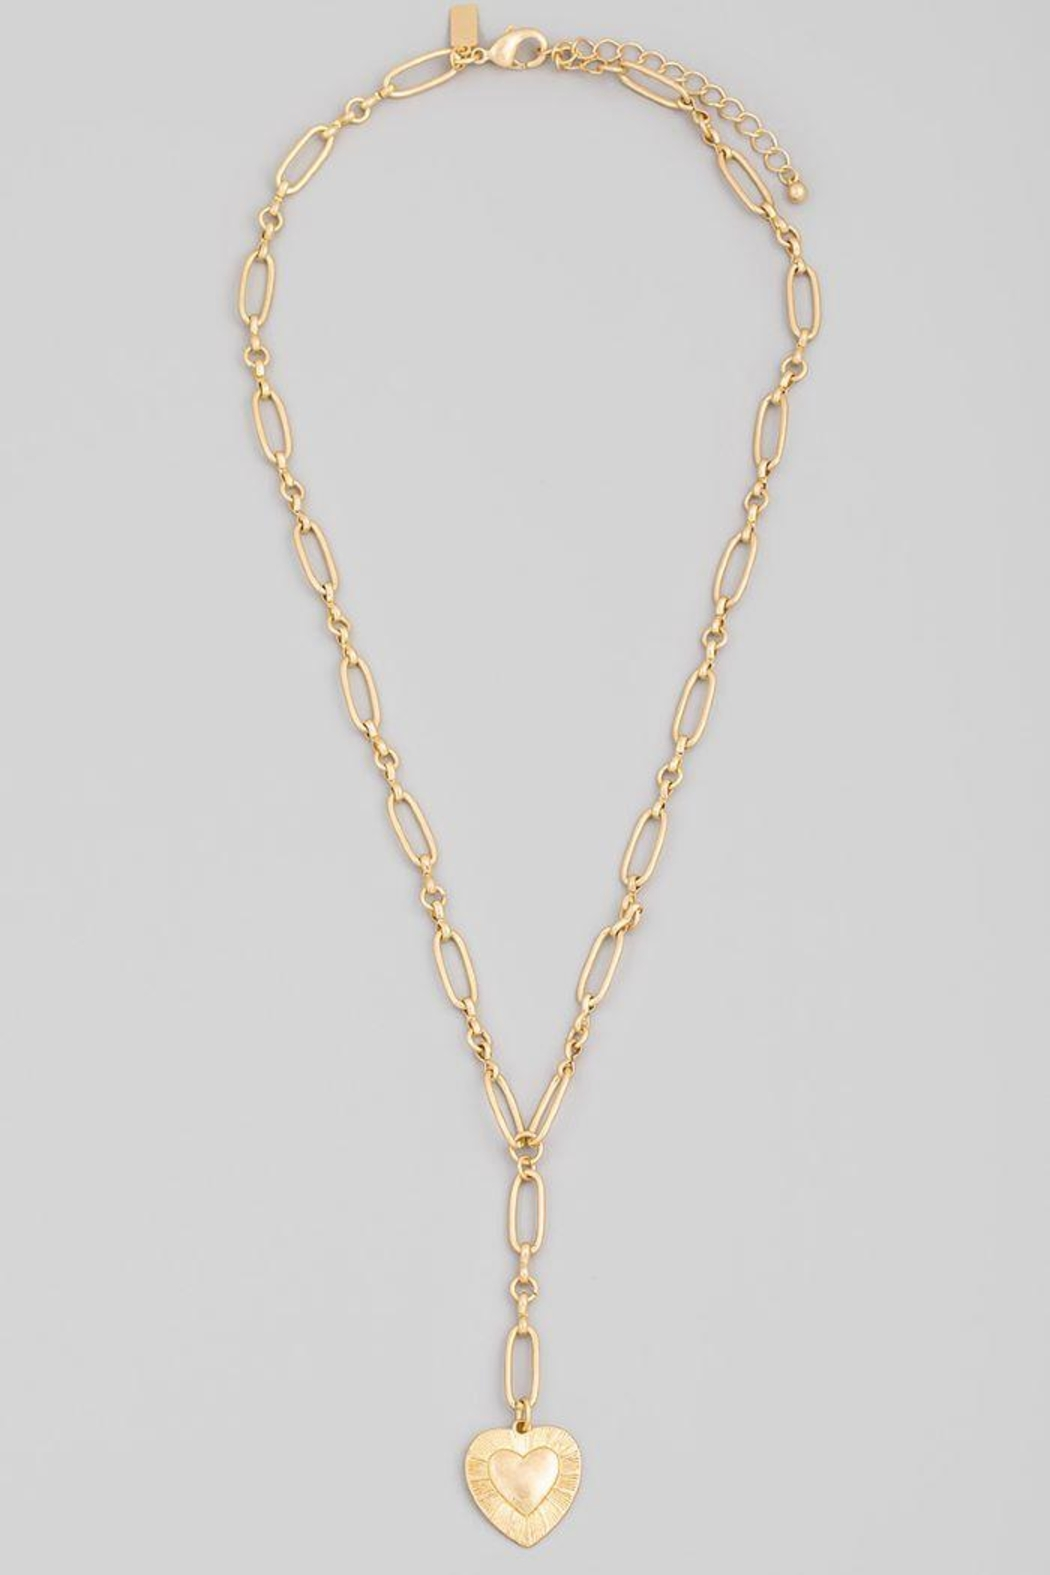 Fame Accessories Chain Link Heart Pendant Necklace - Side Cropped Image